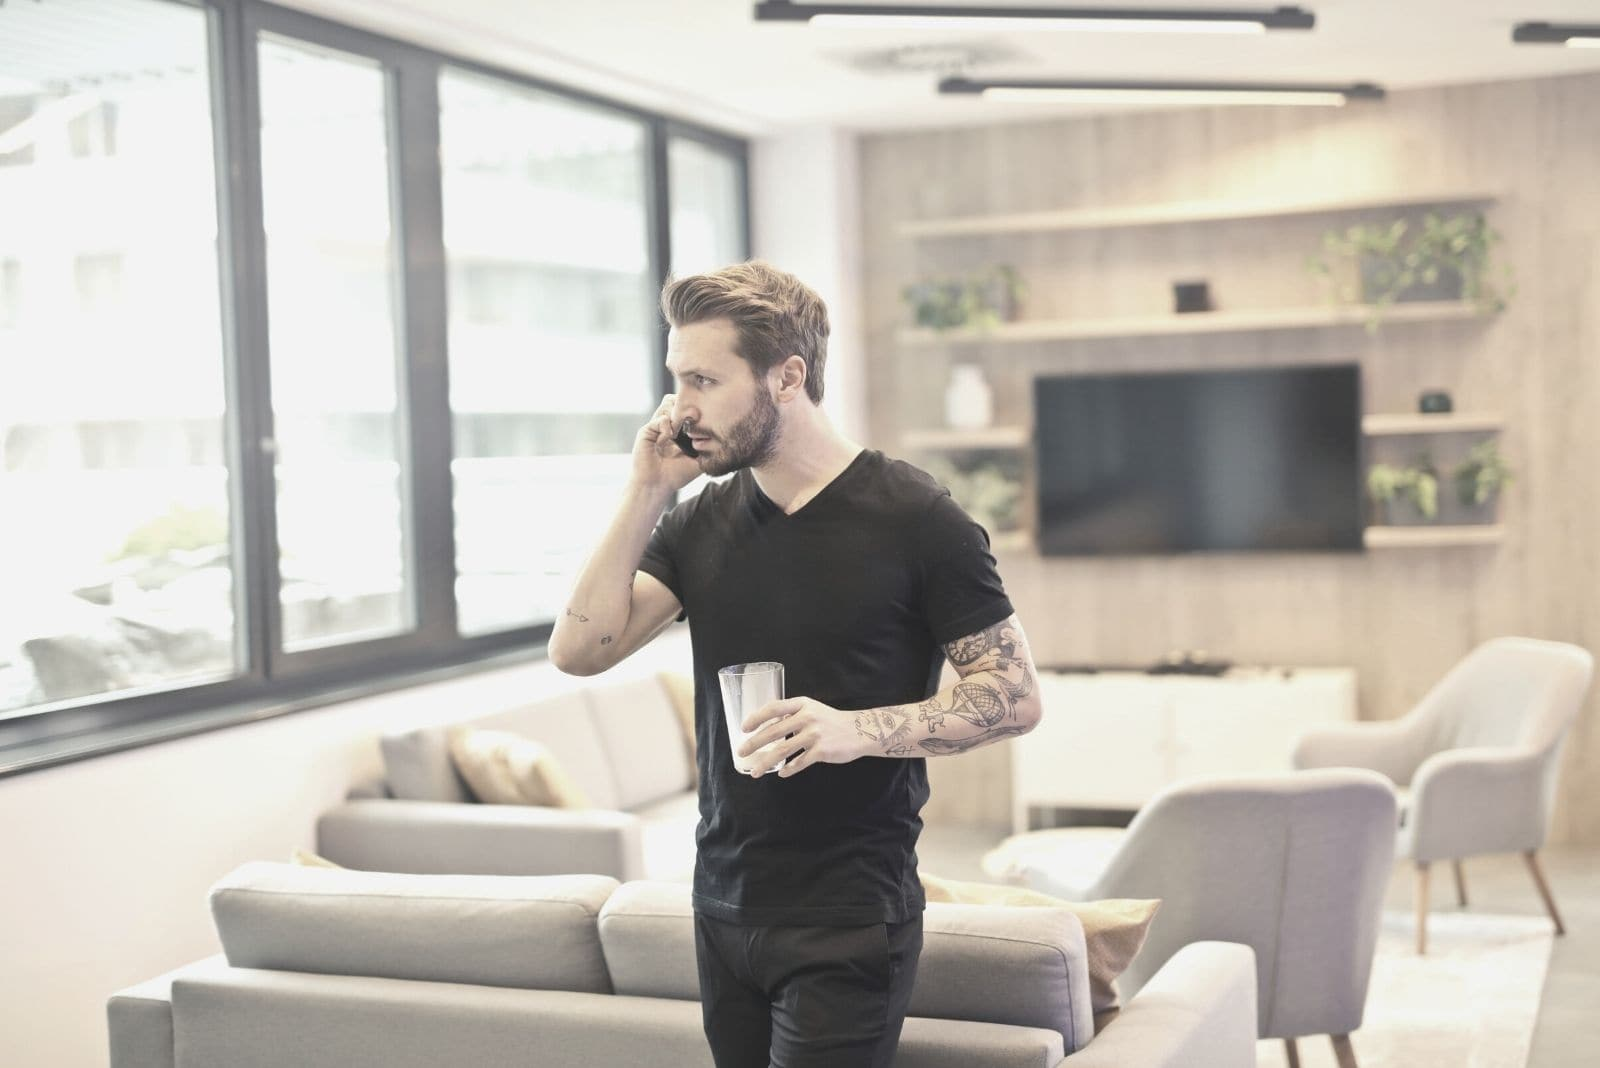 man calling on phone standing and holding glass inside the living room